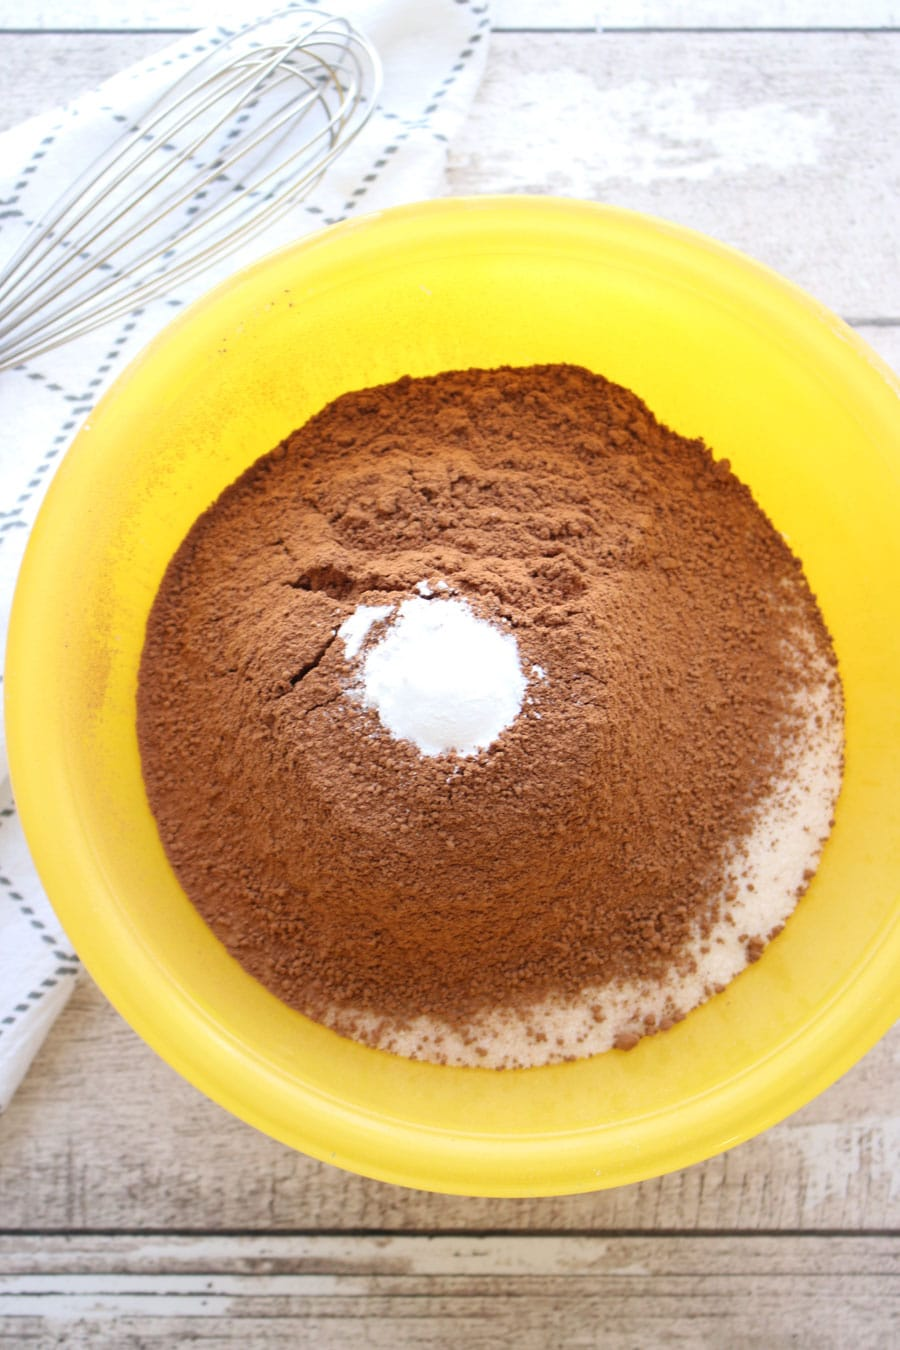 Bowl of dry cake ingredients